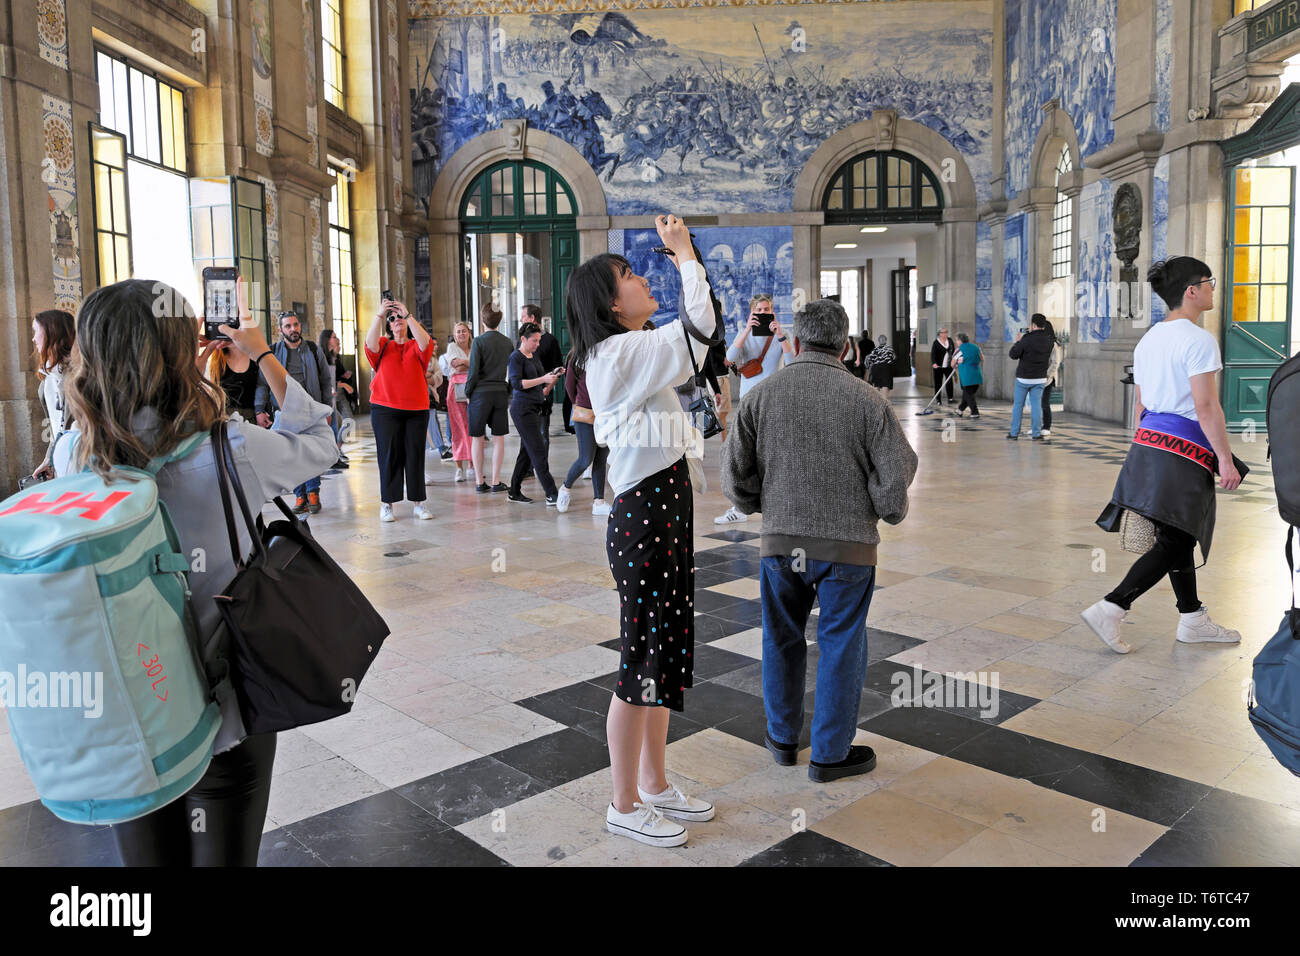 Tourist photographing azulejo tiles in the Central Hall of Sao Bento railway station train station in the city of Porto Portugal Europe KATHY DEWITT - Stock Image